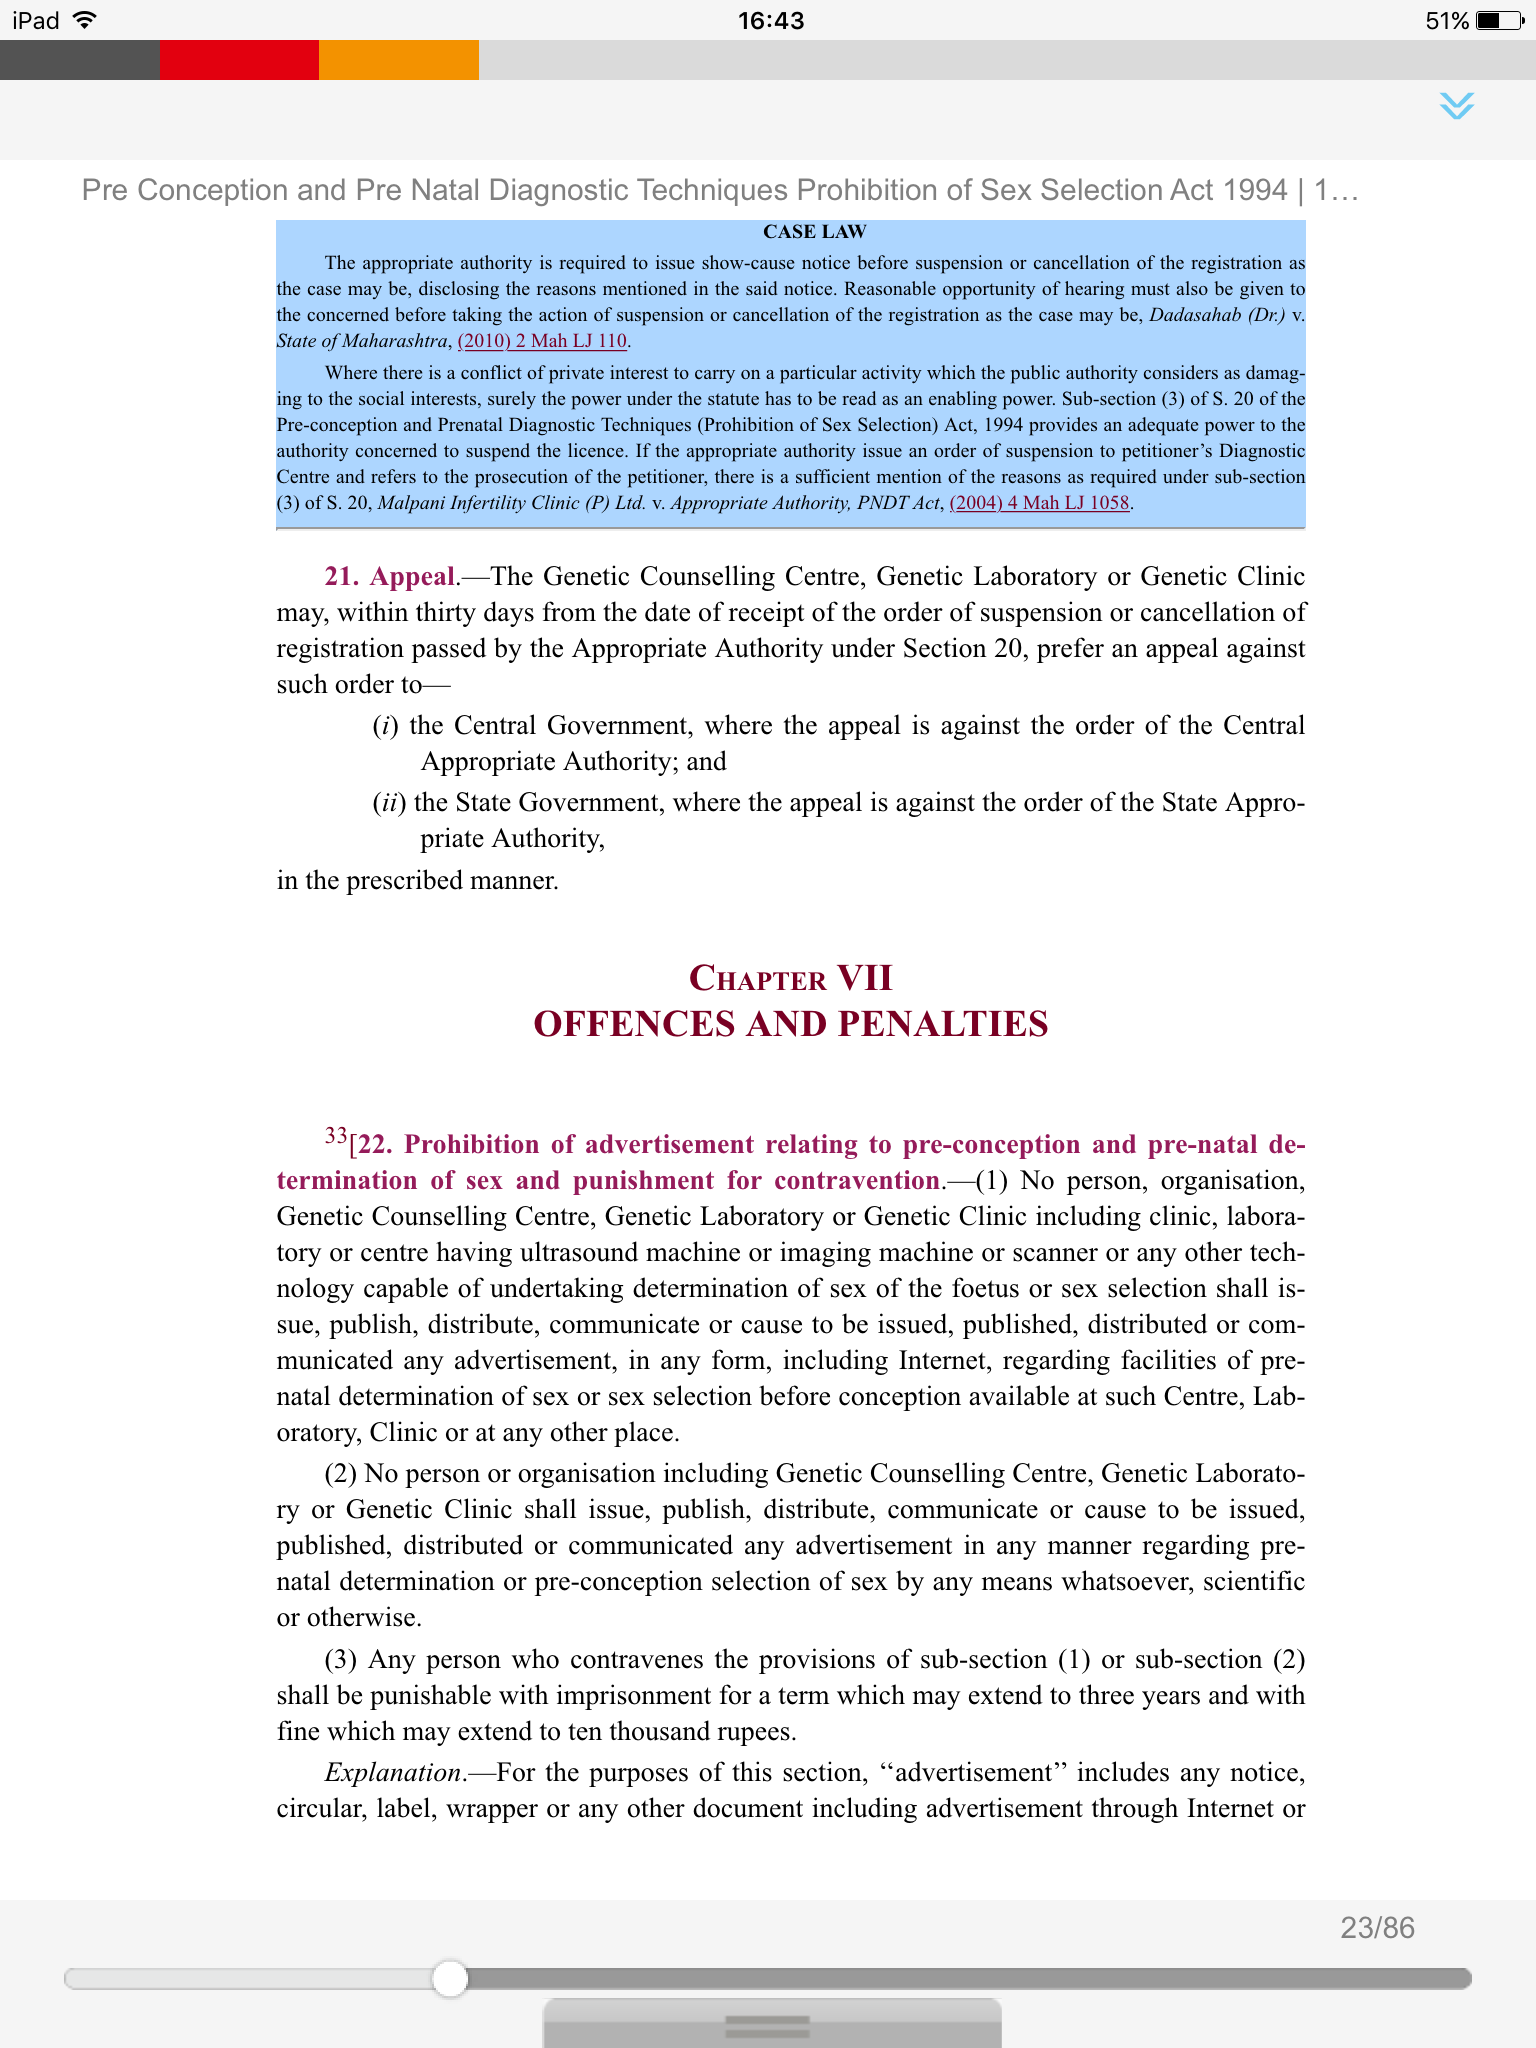 Pcpndt Act Ebook